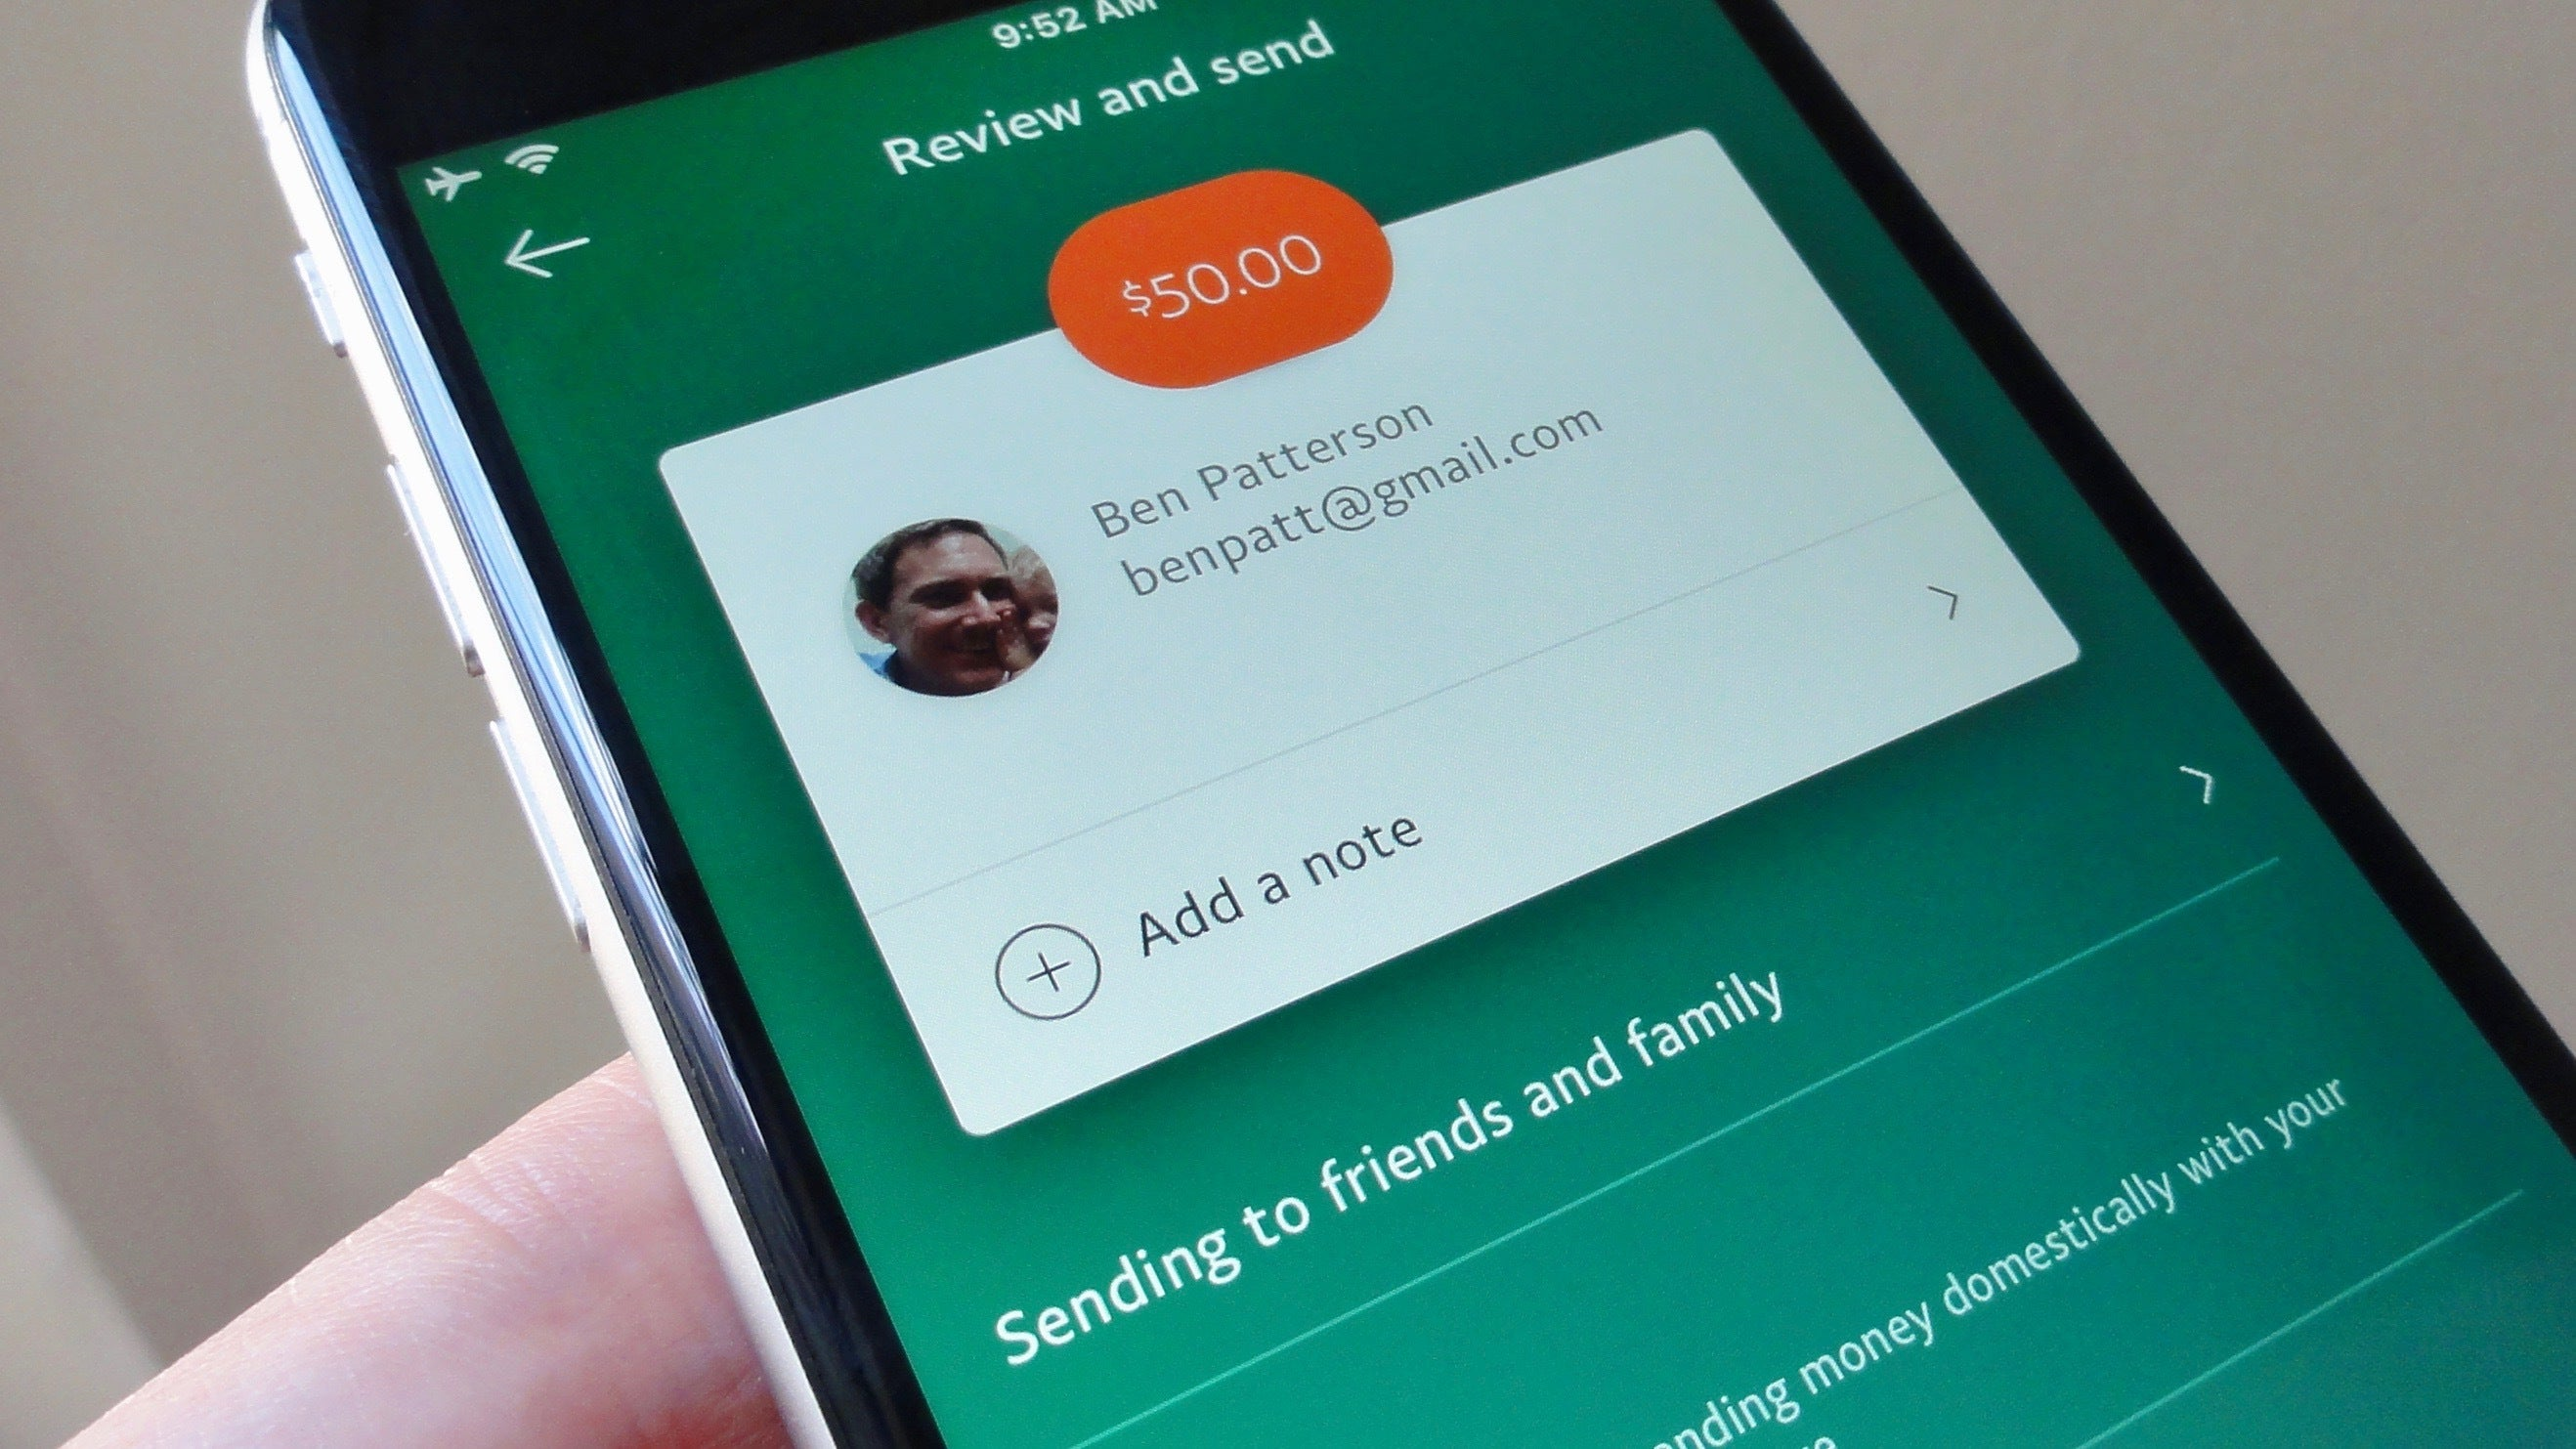 PayPal review: A safe but costly mobile payment app | PCWorld